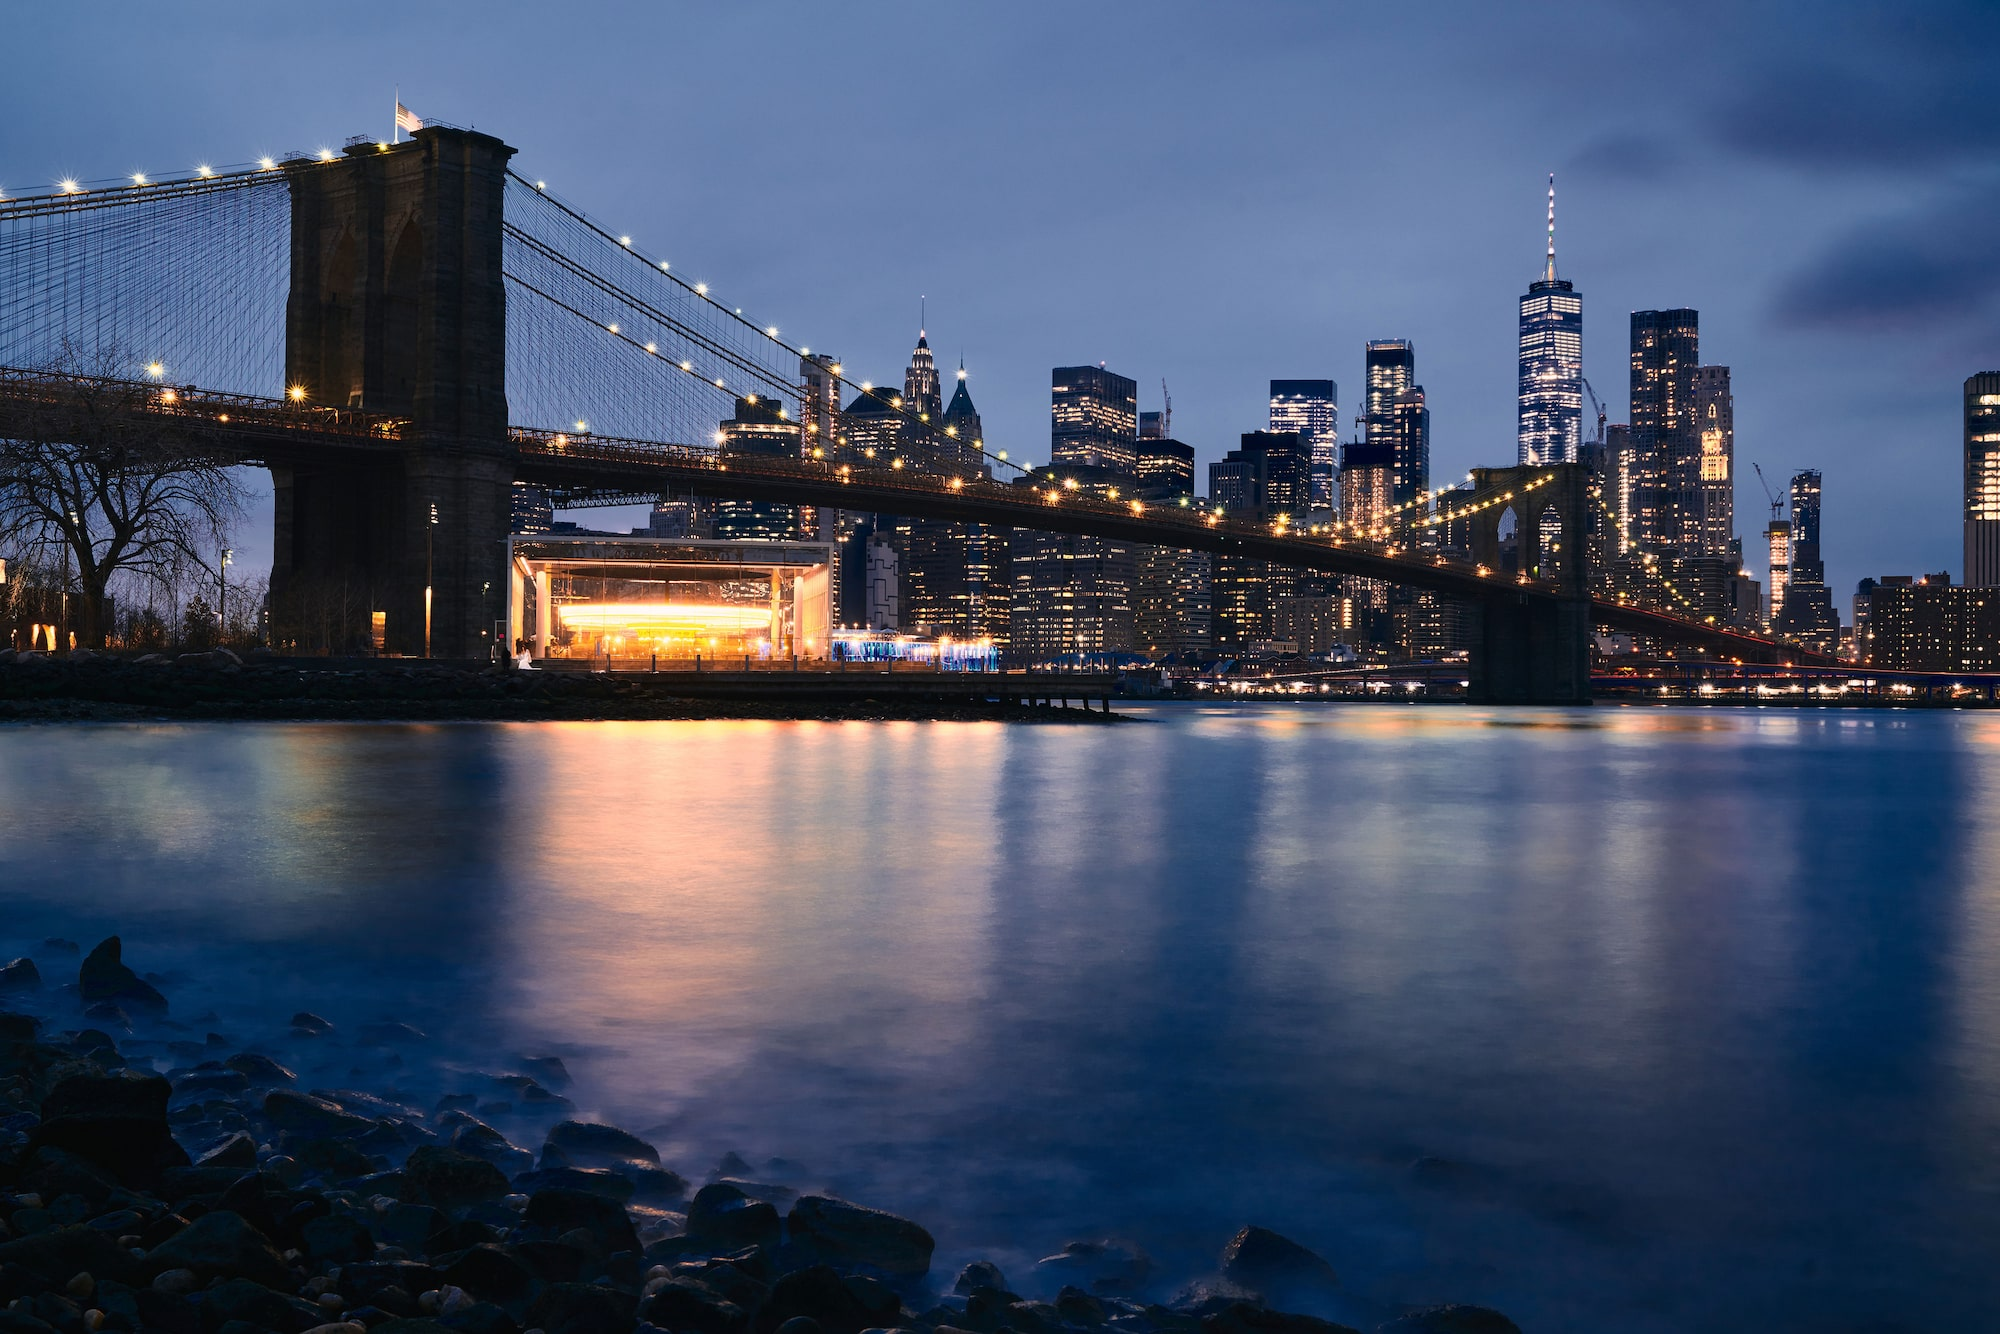 Ron Timehin sony alpha 7RM3 nightime looking across to mahattan with the brooklyn bridge visible